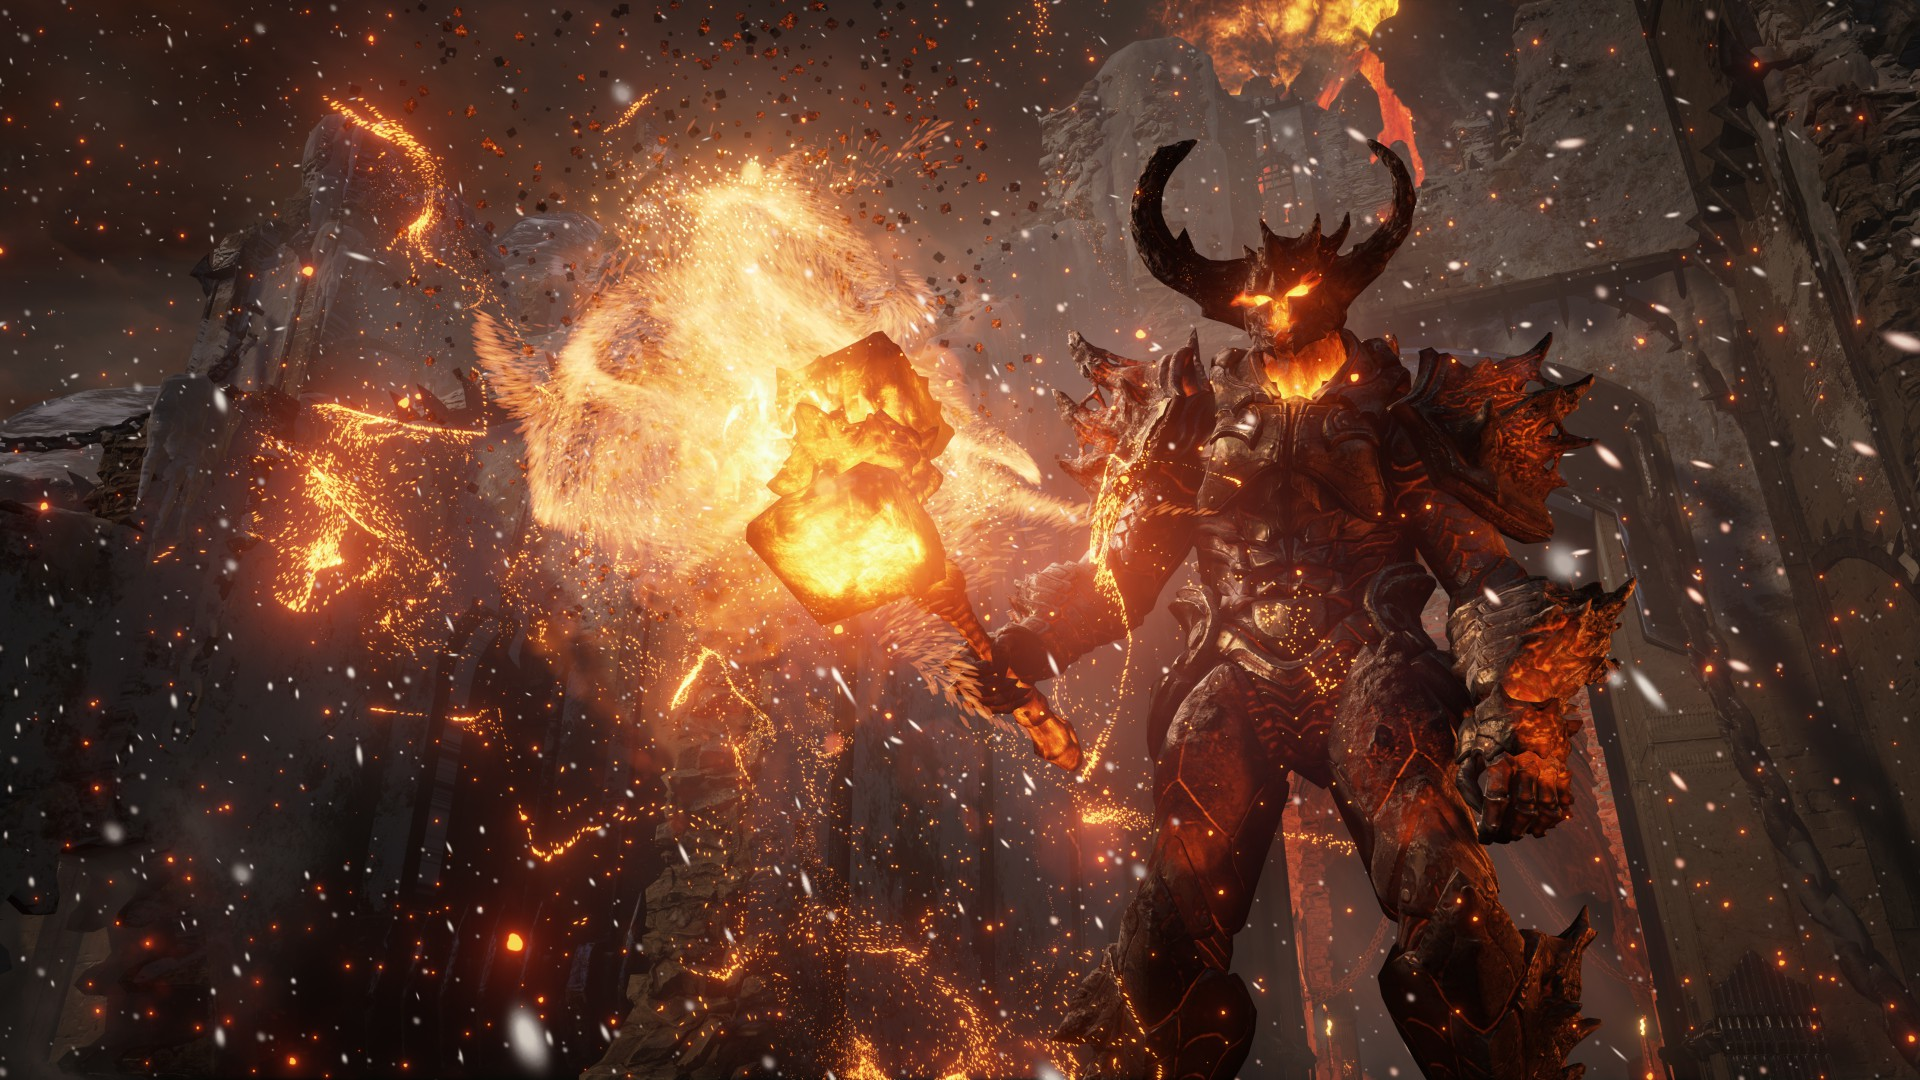 Unreal Engine 4, free game engine, demon face, monster, specifications, review, PS4, Xbox One, PC (horizontal)